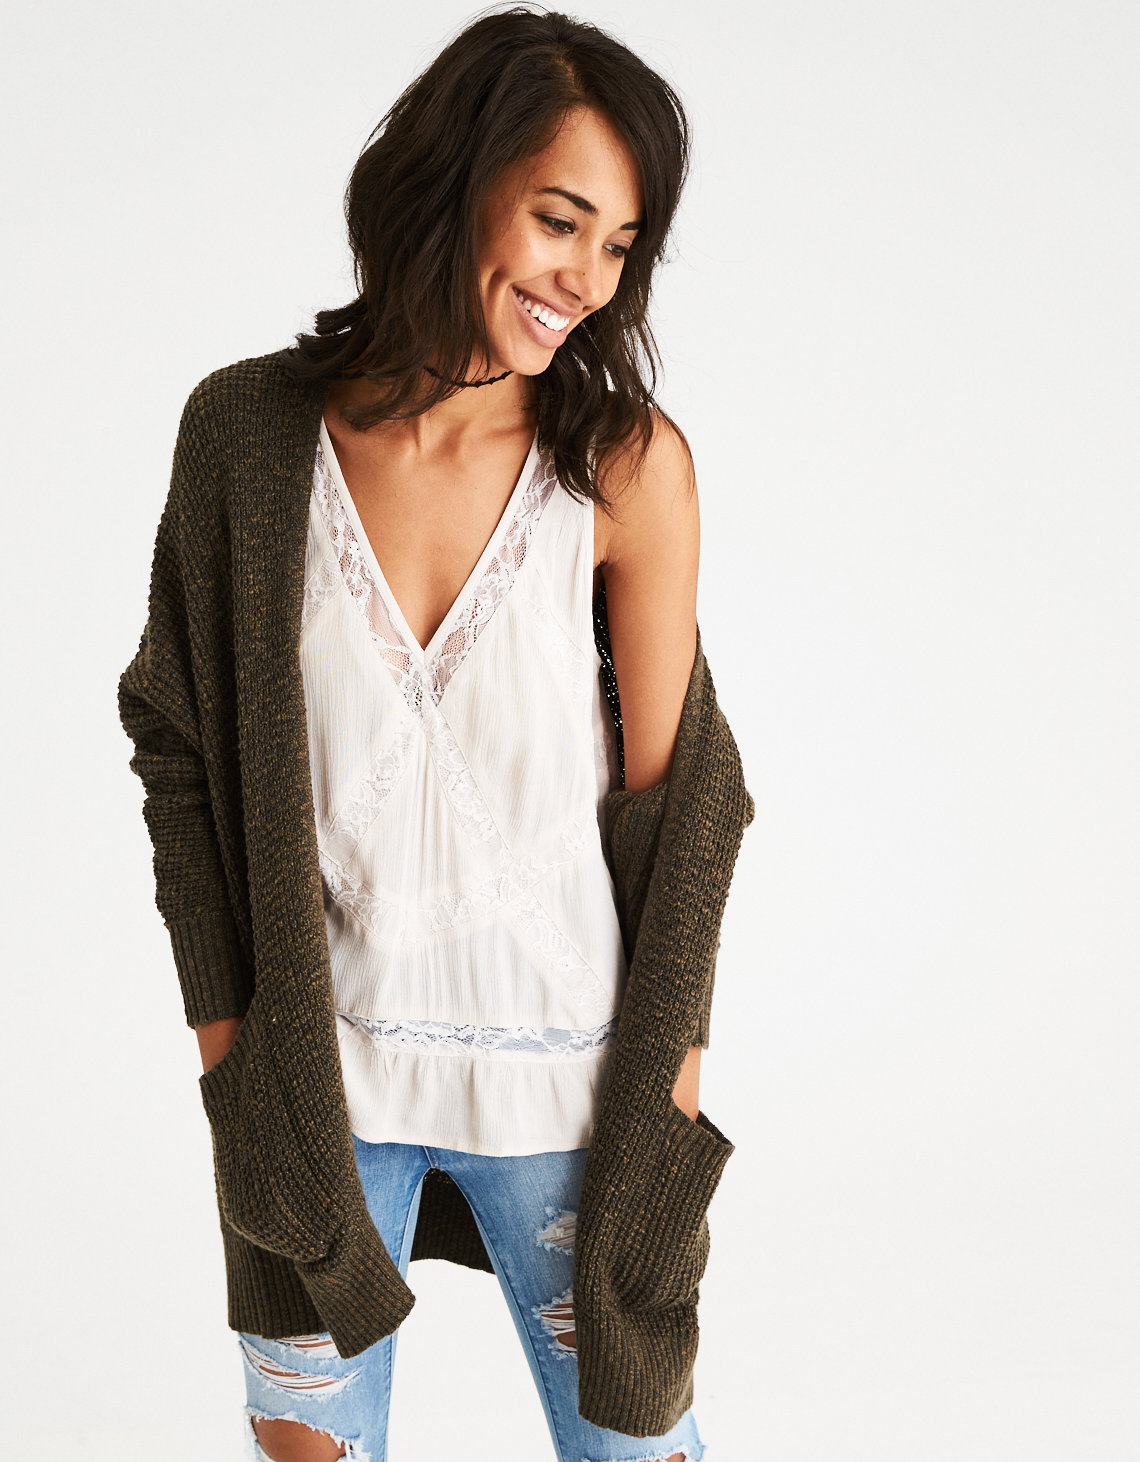 AE Waffle Knit Boyfriend Cardigan, Olive   American Eagle Outfitters